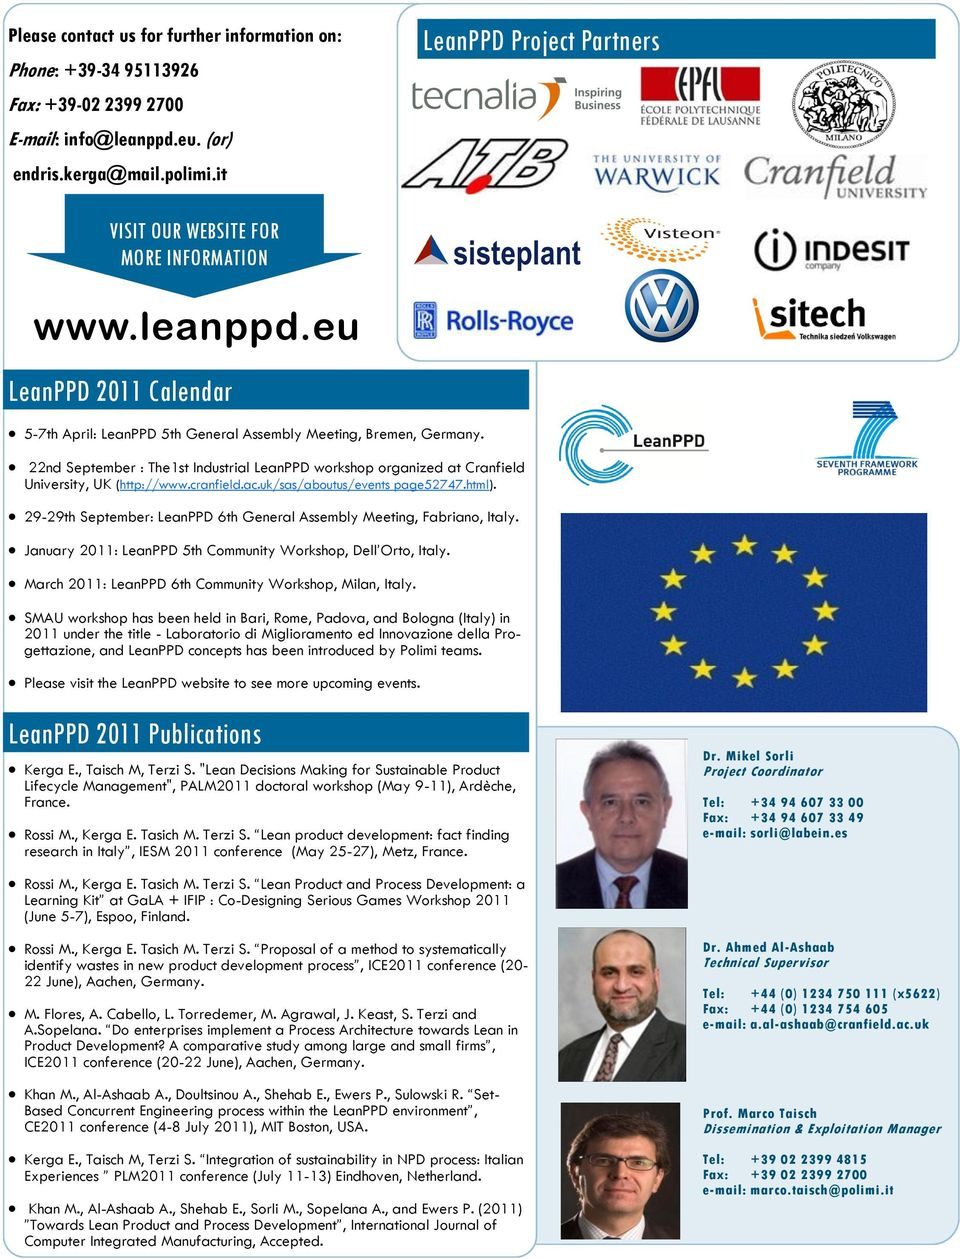 22nd September : The1st Industrial LeanPPD workshop organized at Cranfield University, UK (http://www.cranfield.ac.uk/sas/aboutus/events page52747.html).